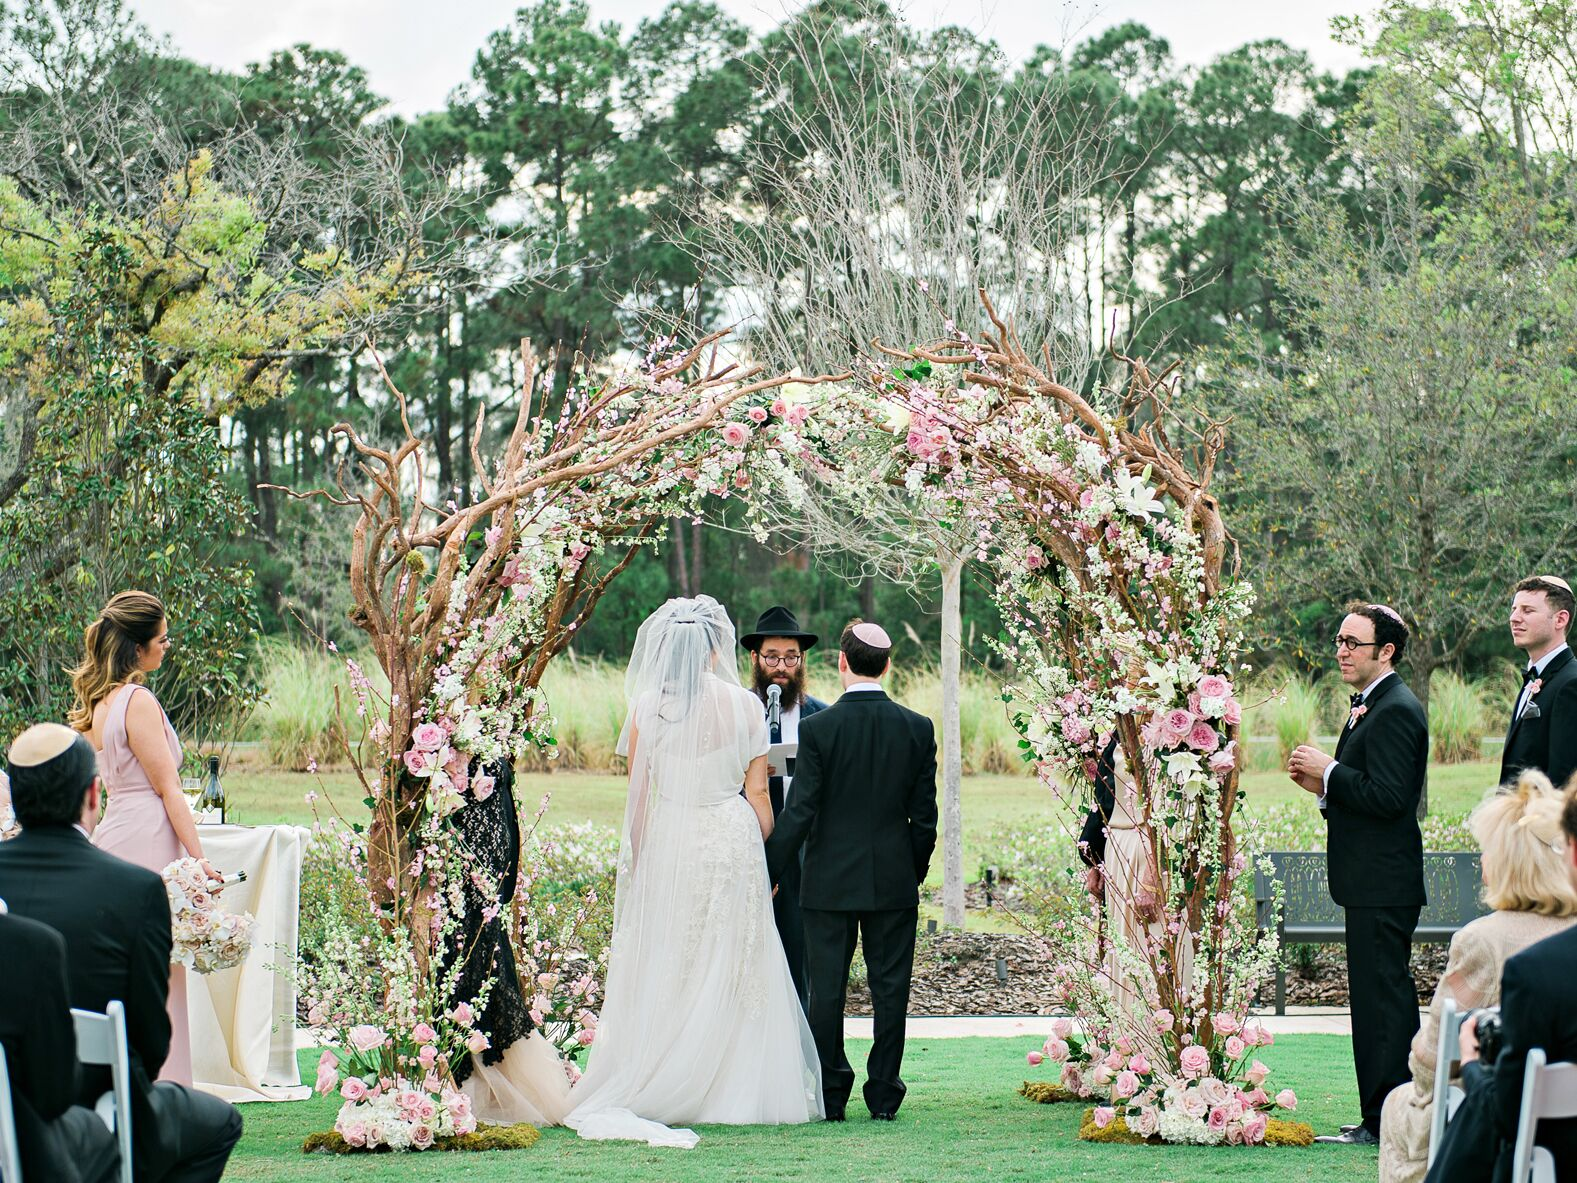 Jewish Wedding Ceremony: Jewish Processionals, Recessionals & Seating